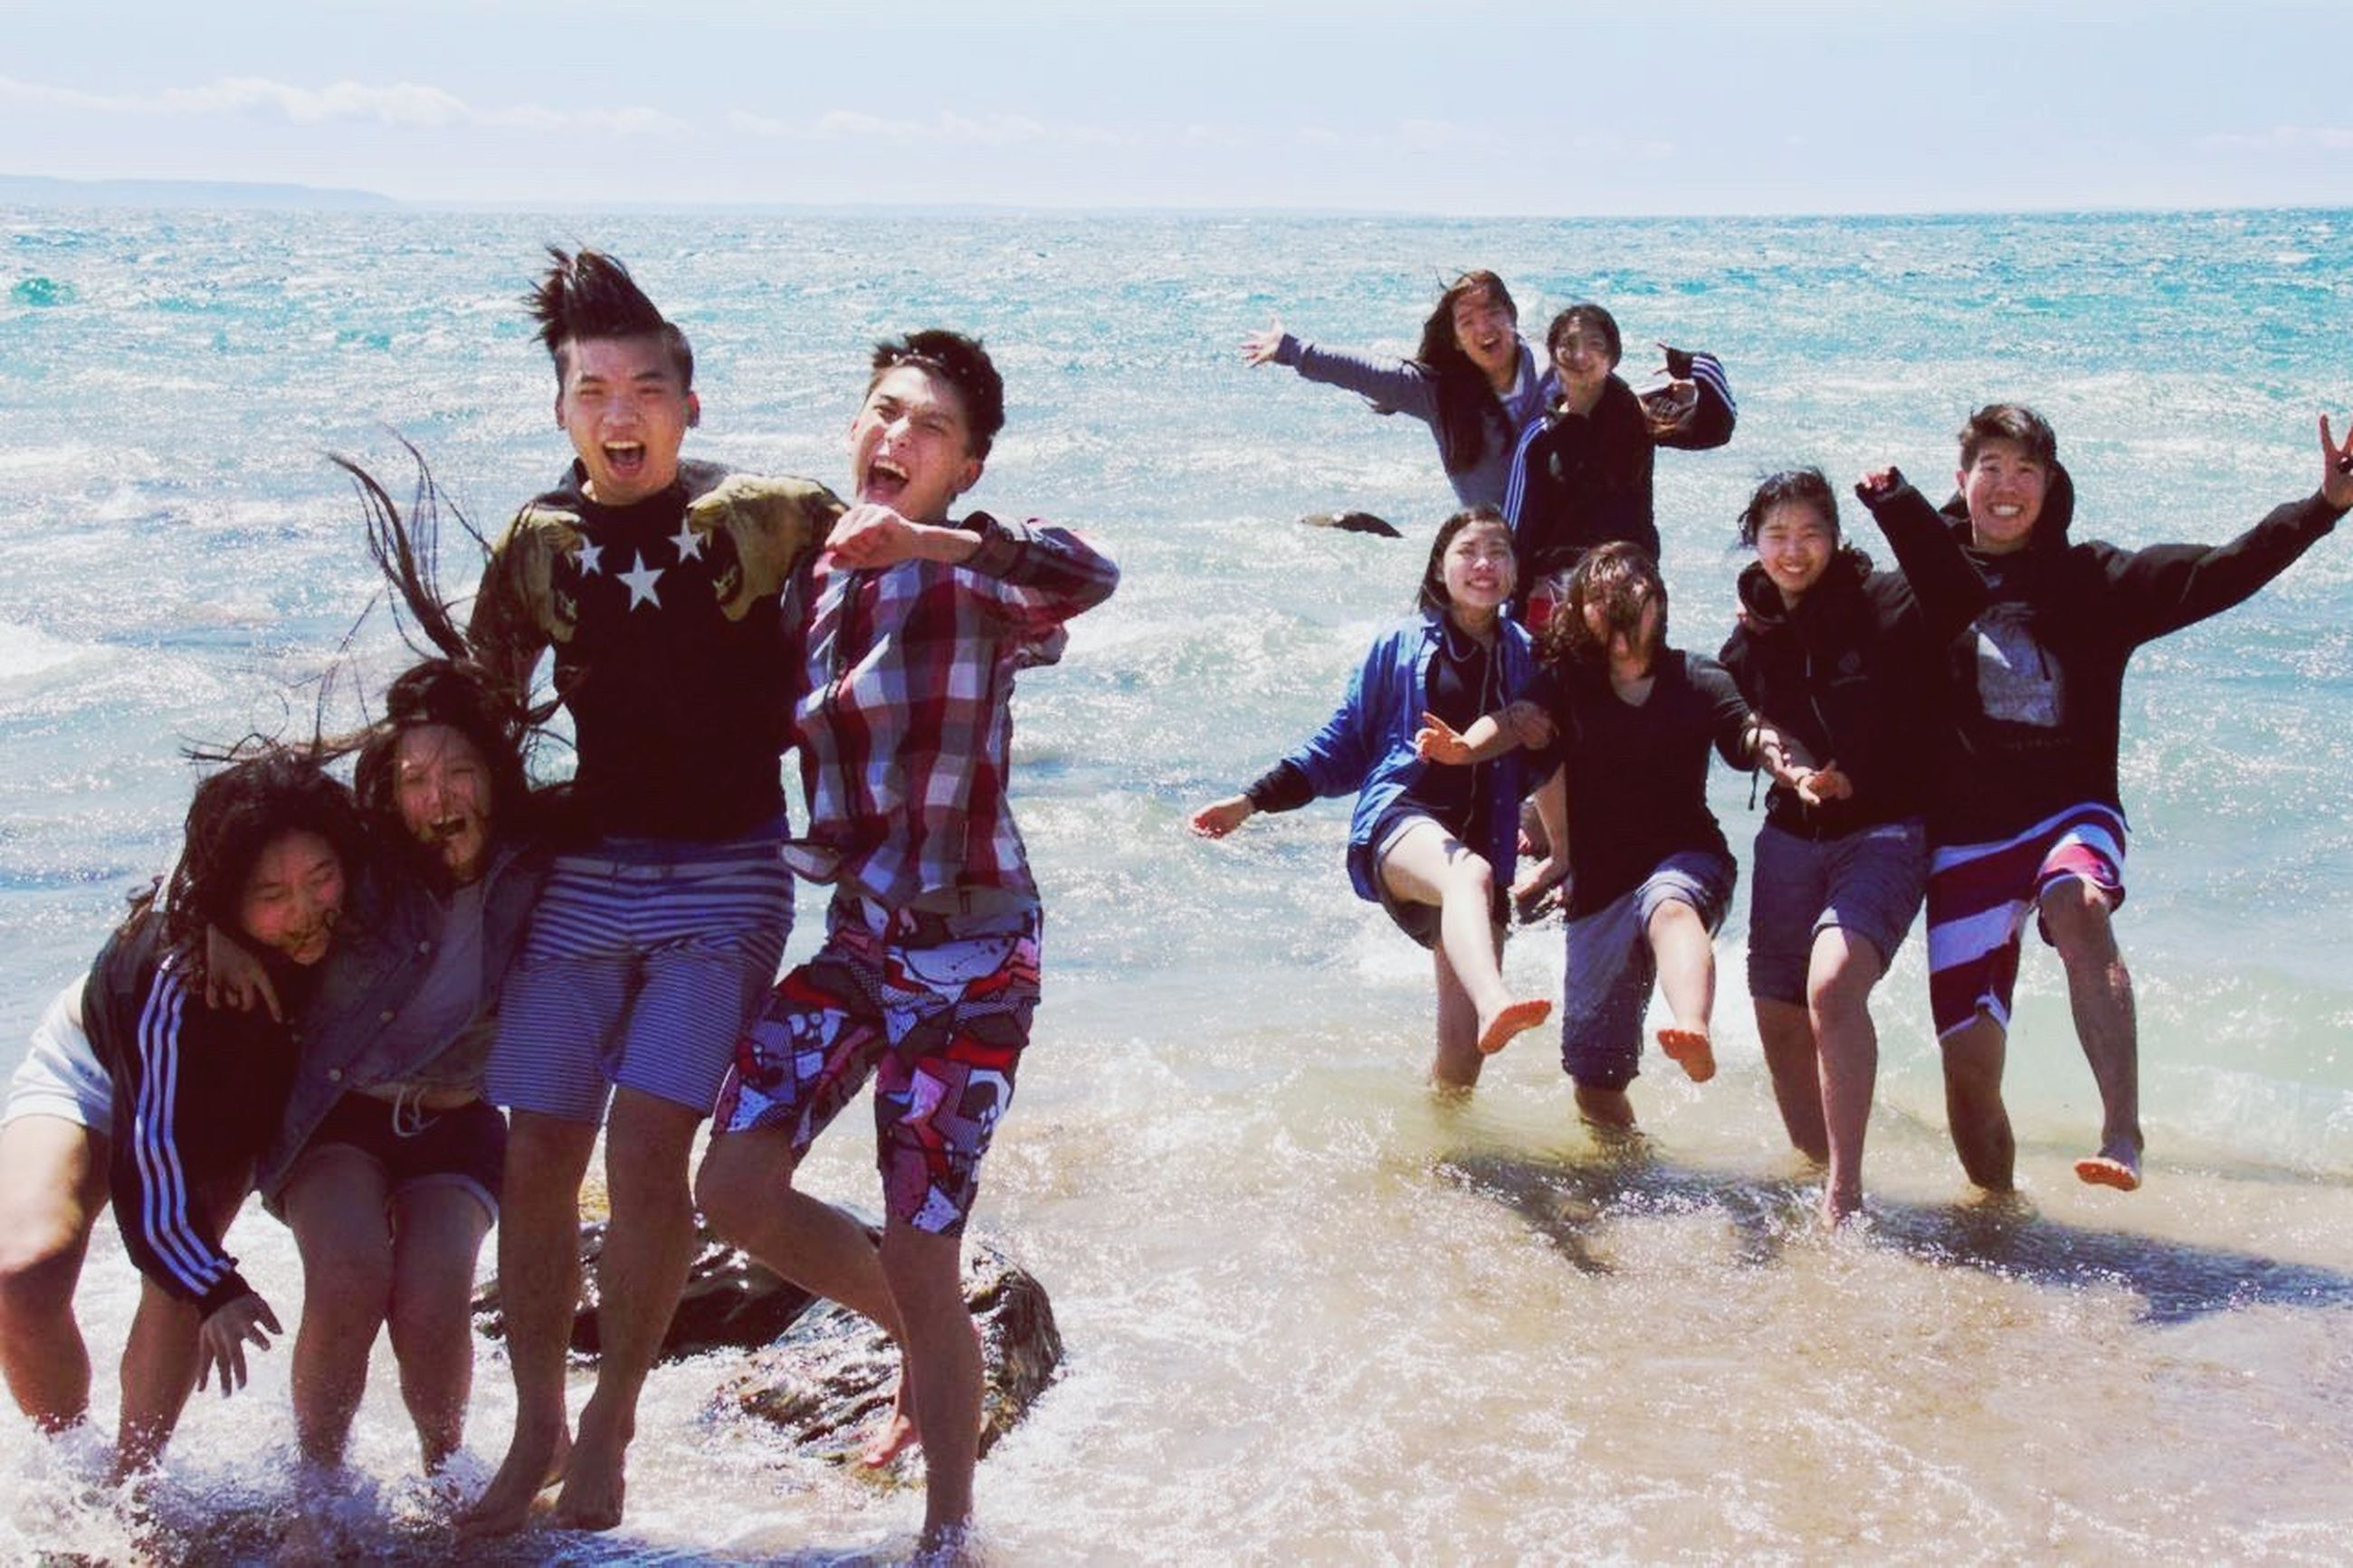 sea, beach, water, lifestyles, leisure activity, togetherness, vacations, shore, horizon over water, men, sand, enjoyment, bonding, summer, large group of people, person, friendship, fun, wave